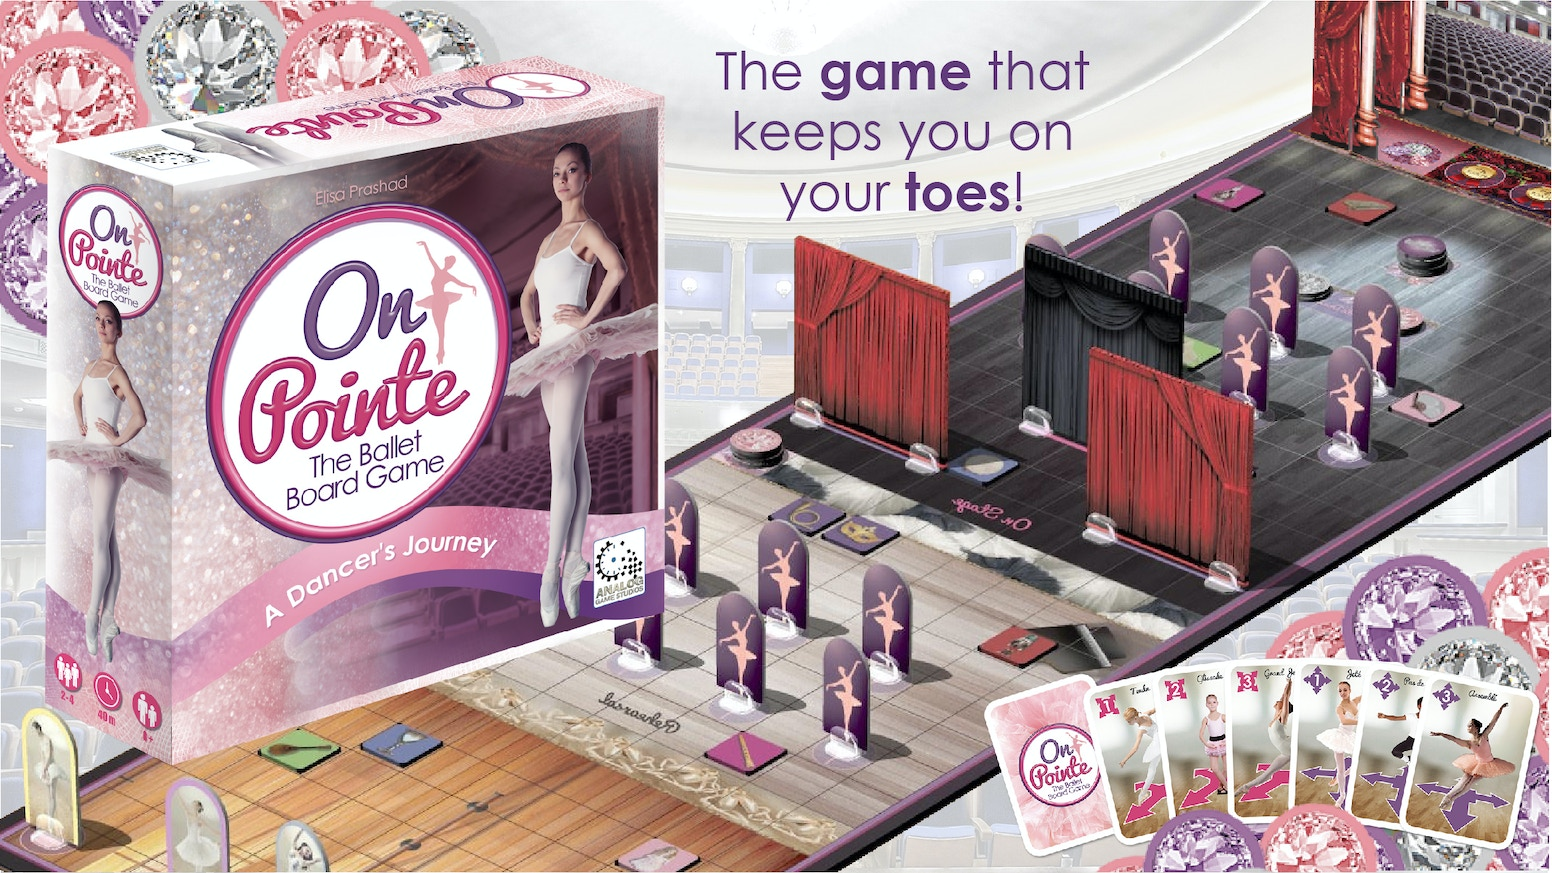 In pursuit to become Prima, collect gems & treasures in a set collection ballet themed game.